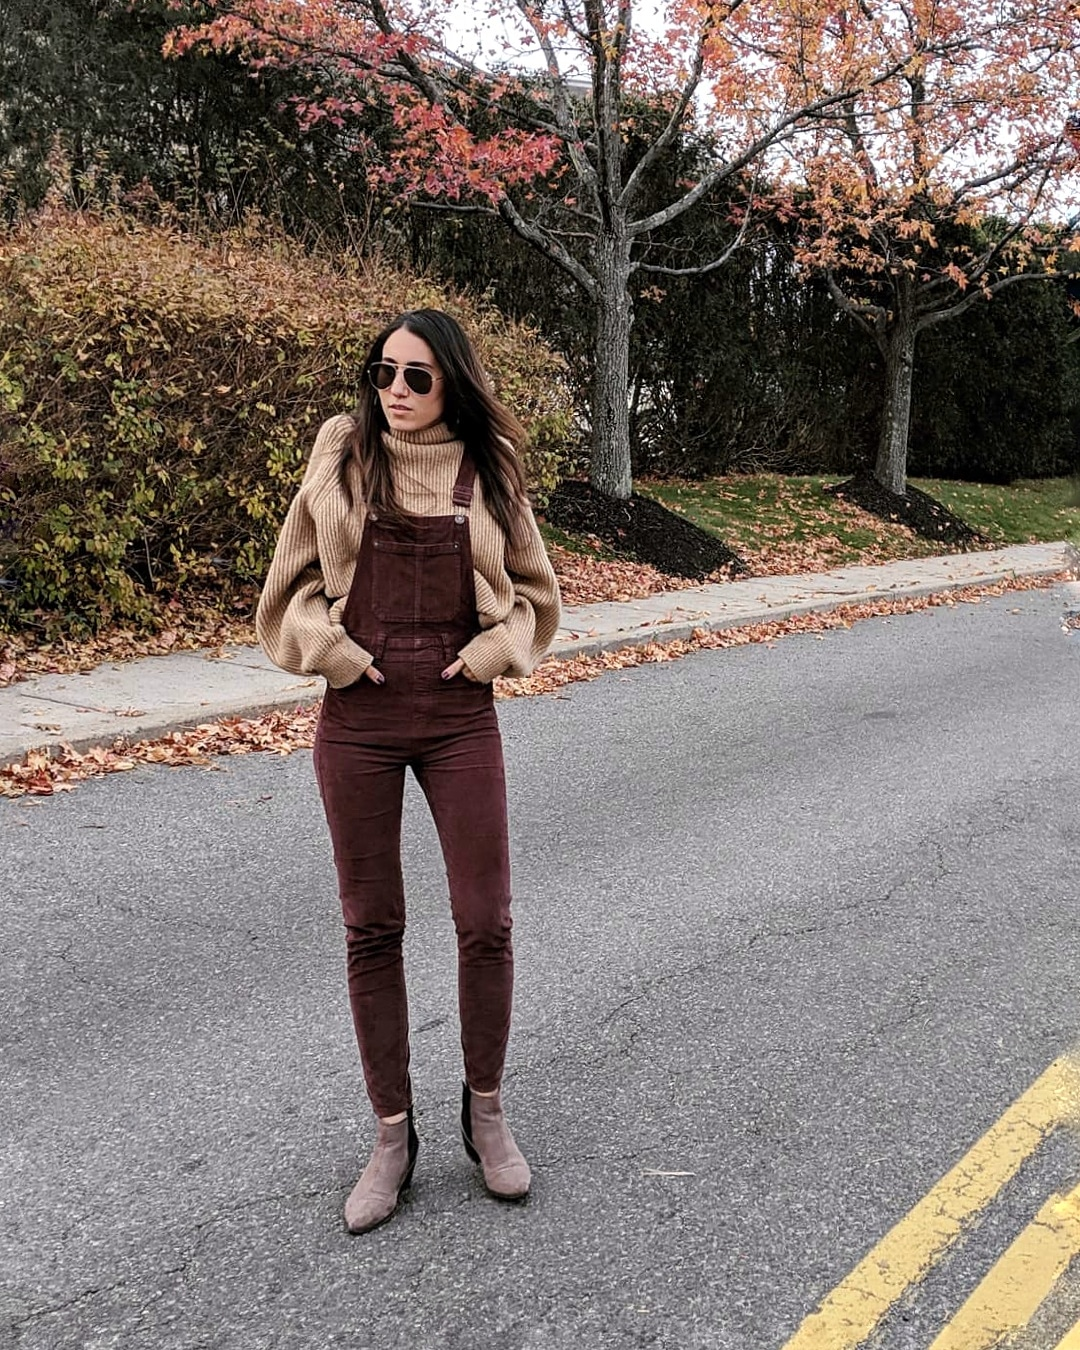 Wearing:  H&M   Sweater     | Free People   Overalls   | H&M  Booties